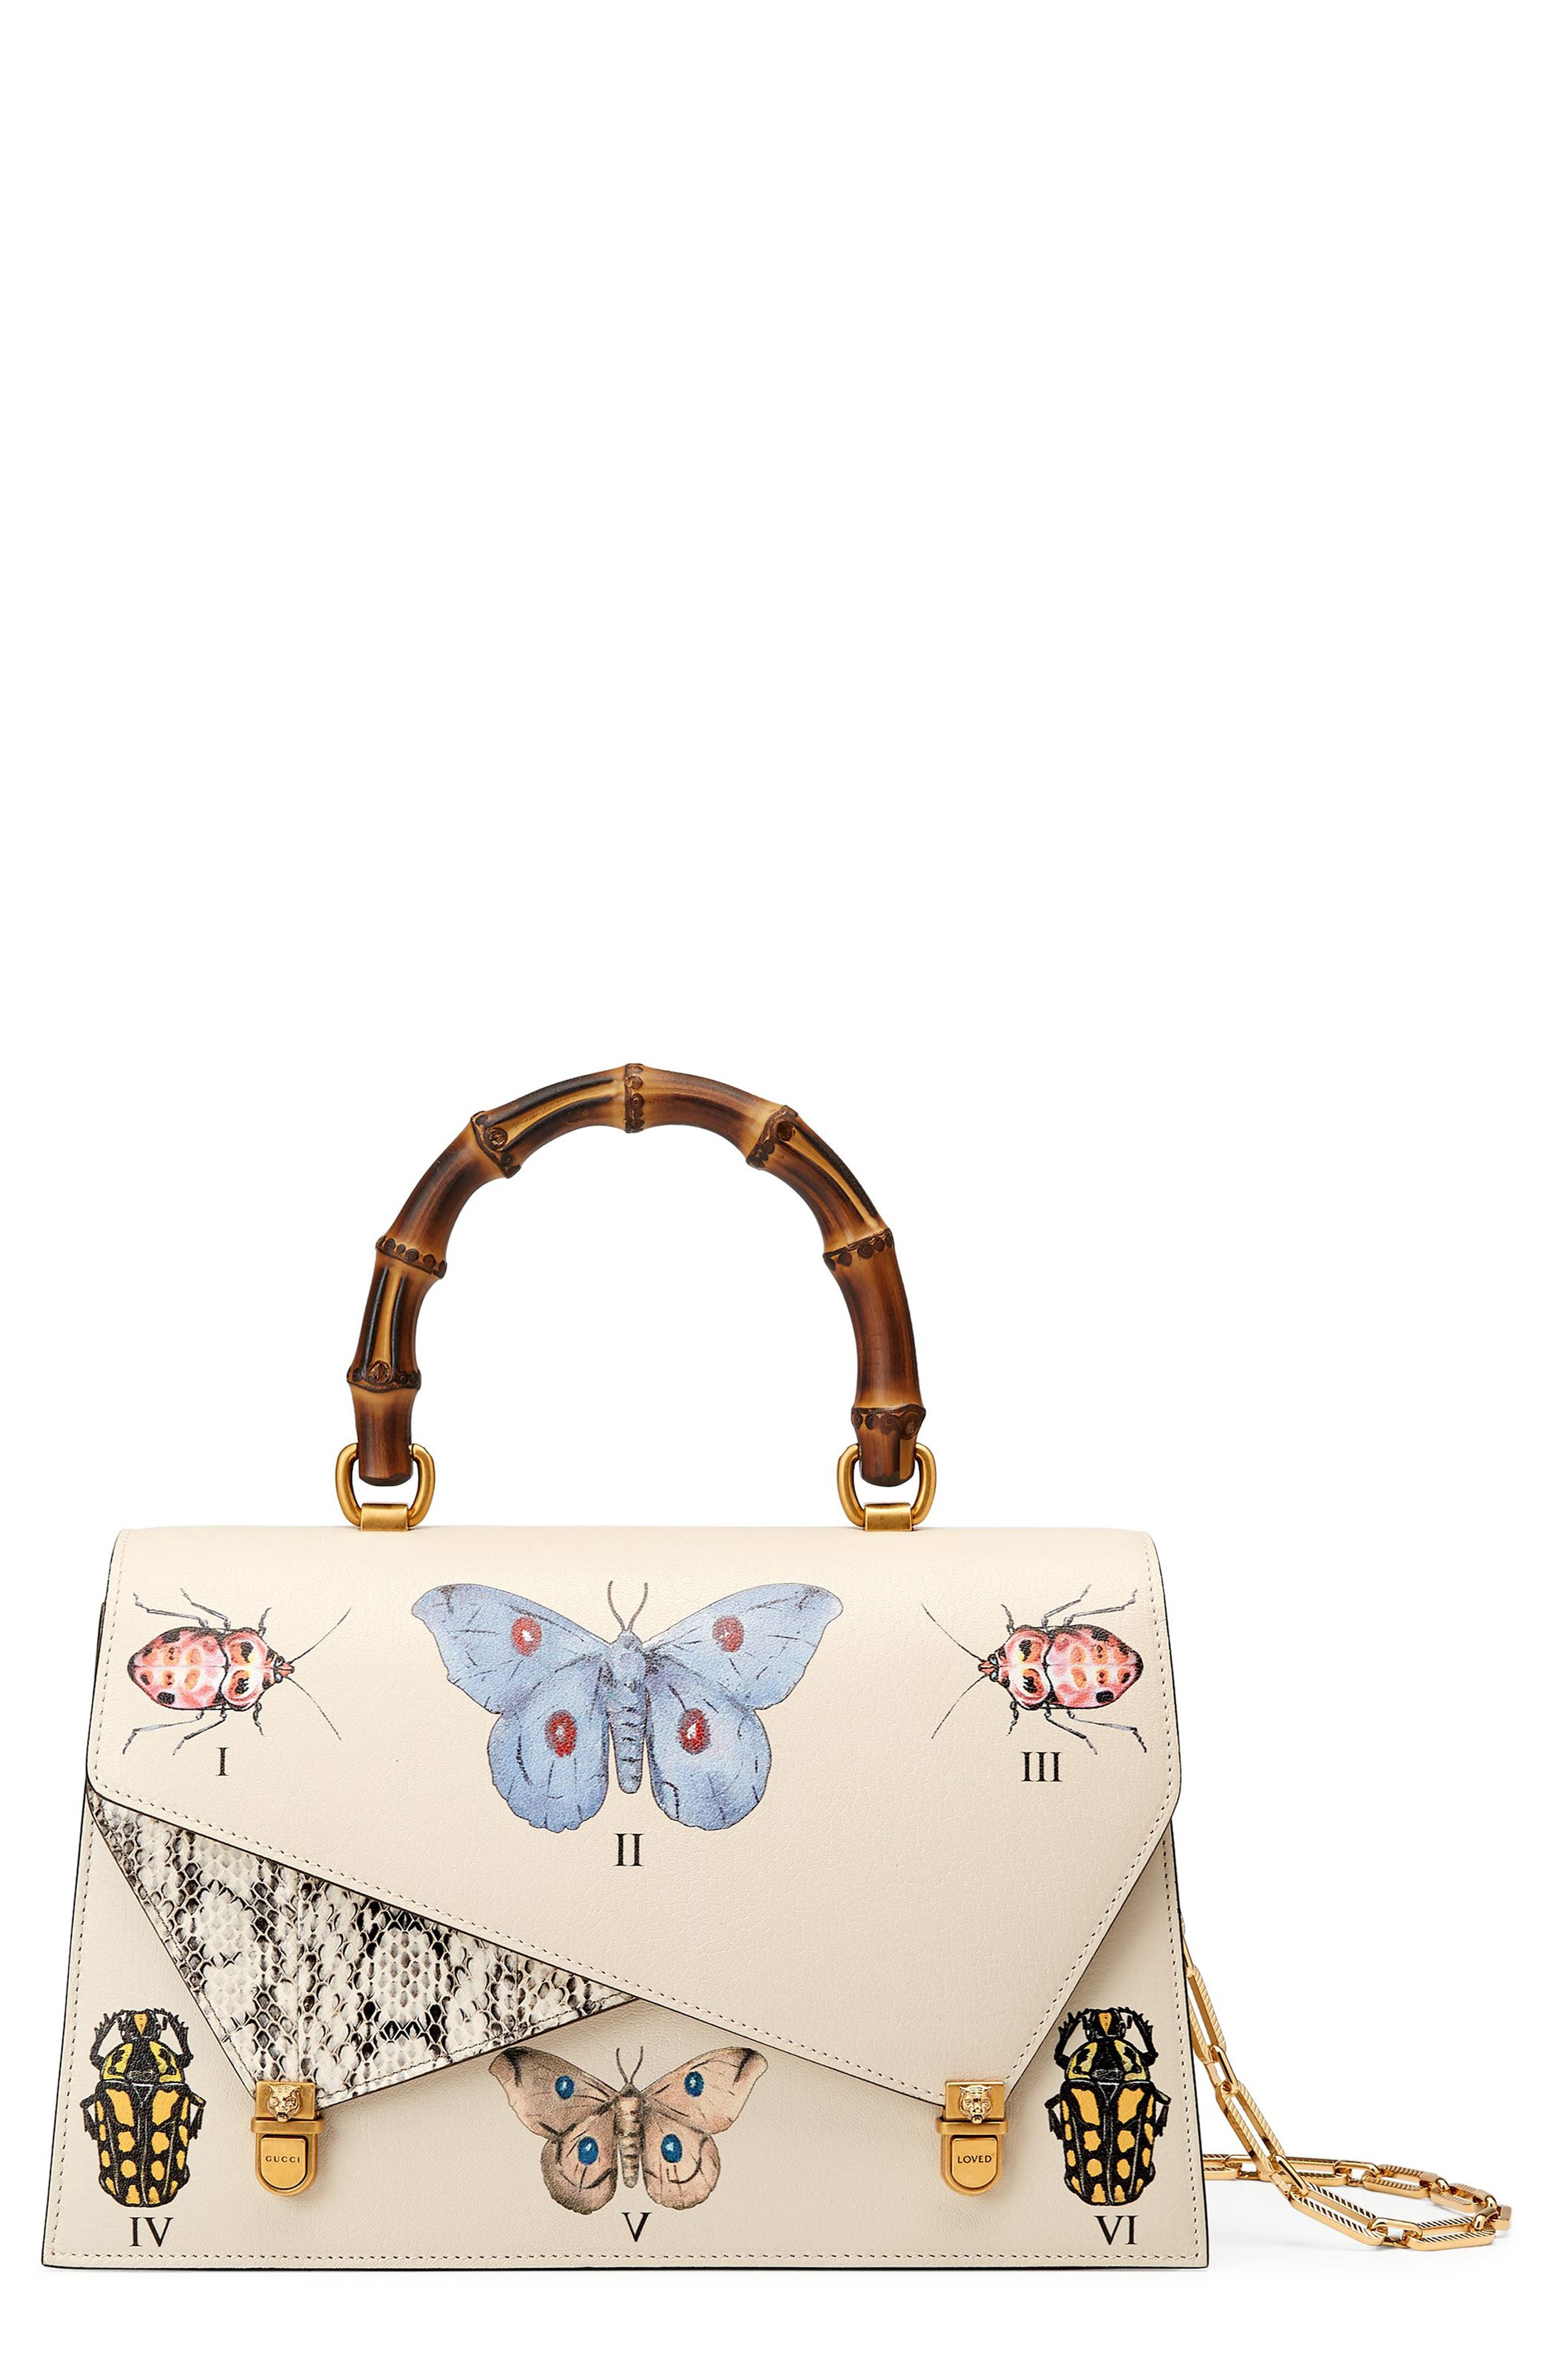 Medium Linea P Butterfly Painted Leather & Genuine Snakeskin Top Handle Satchel,                             Main thumbnail 1, color,                             White/ Multi